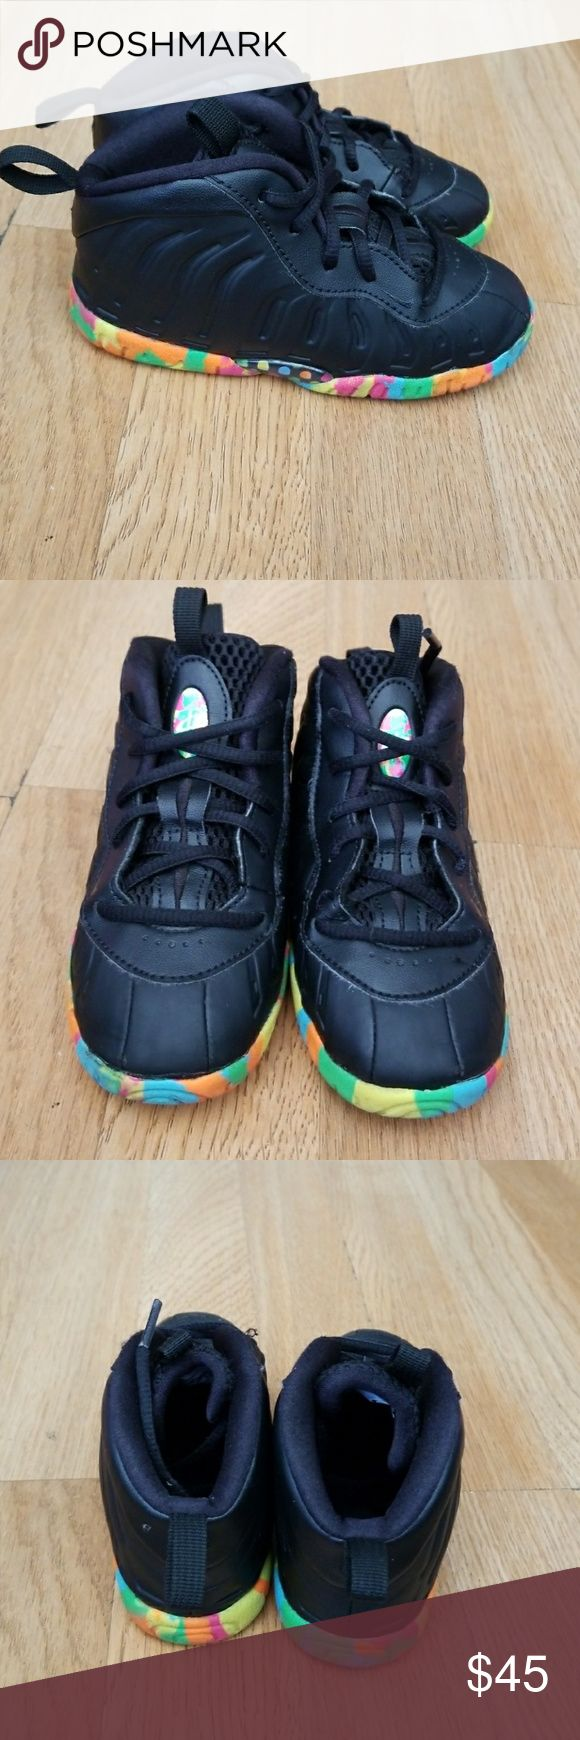 Foamposite fruity pebbles size 9c Nice in good condition Nike Shoes